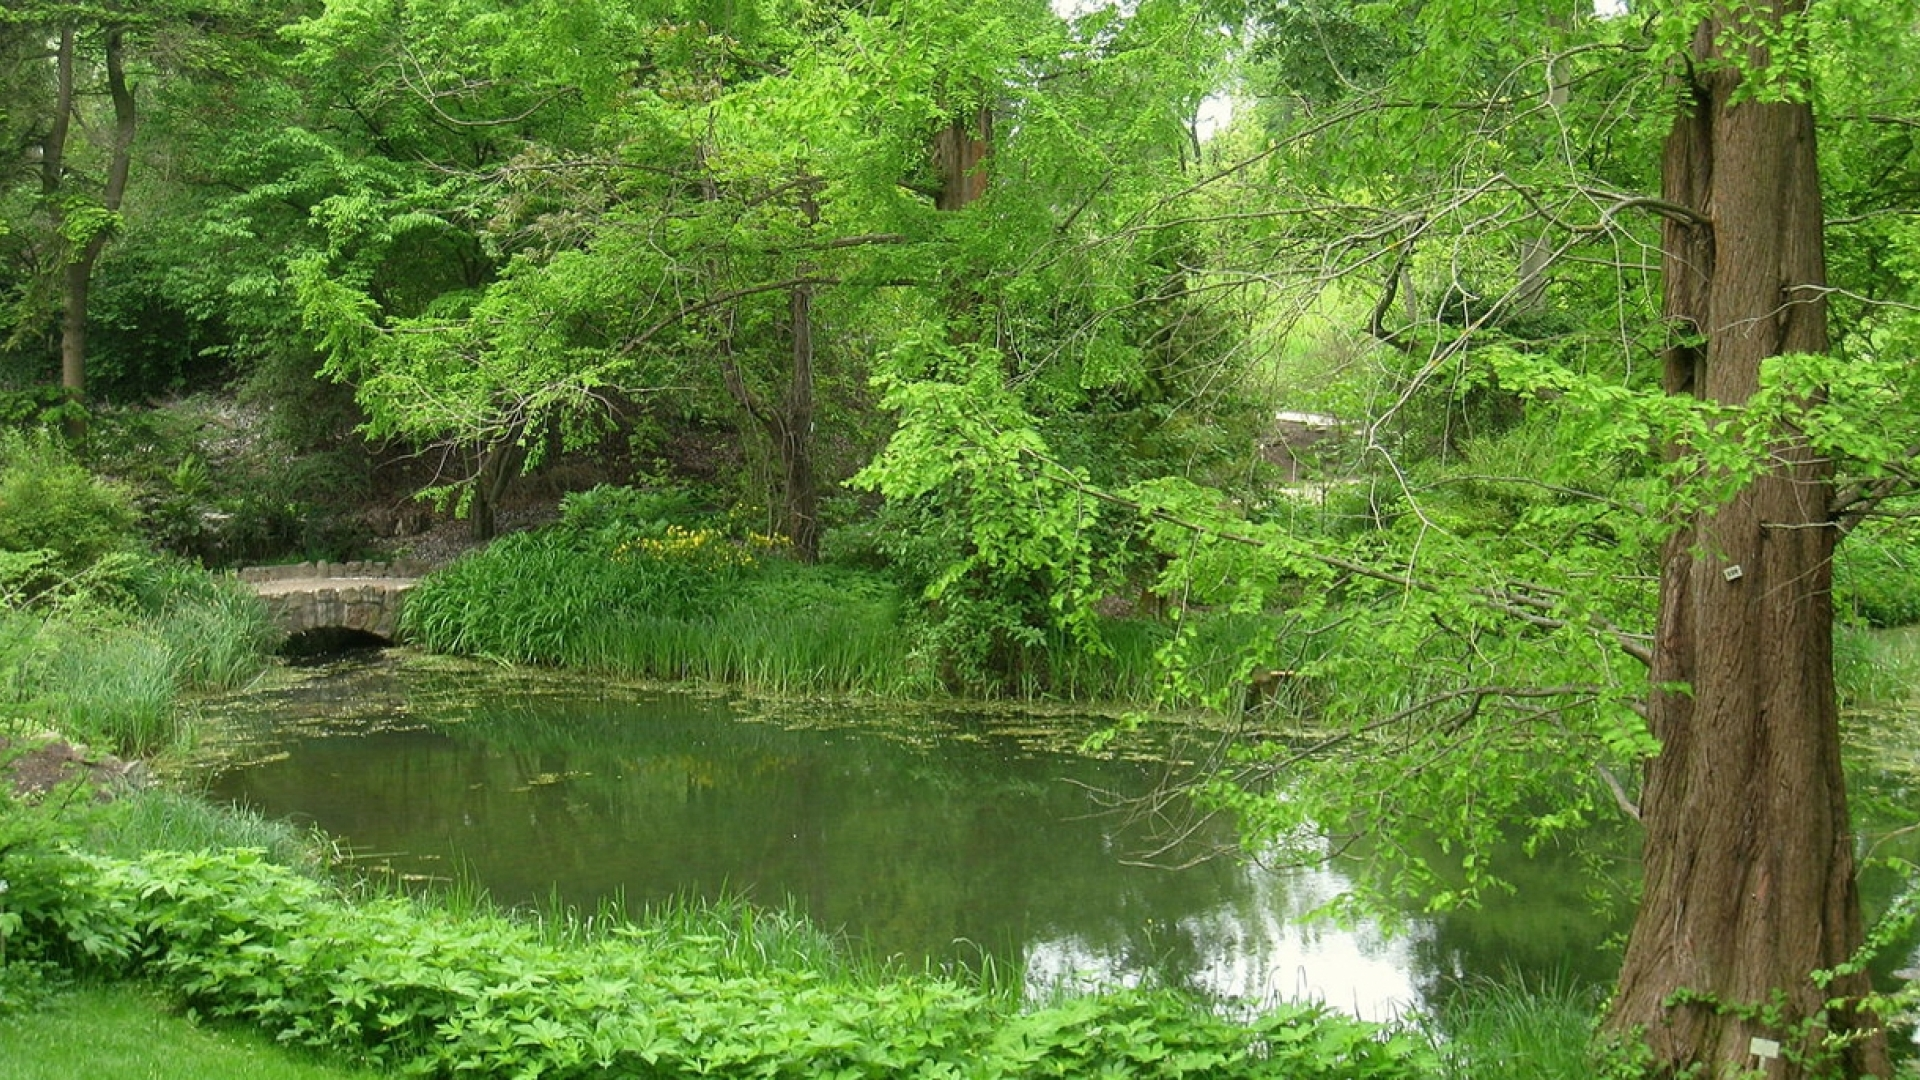 Berlin botanical garden pond and trees